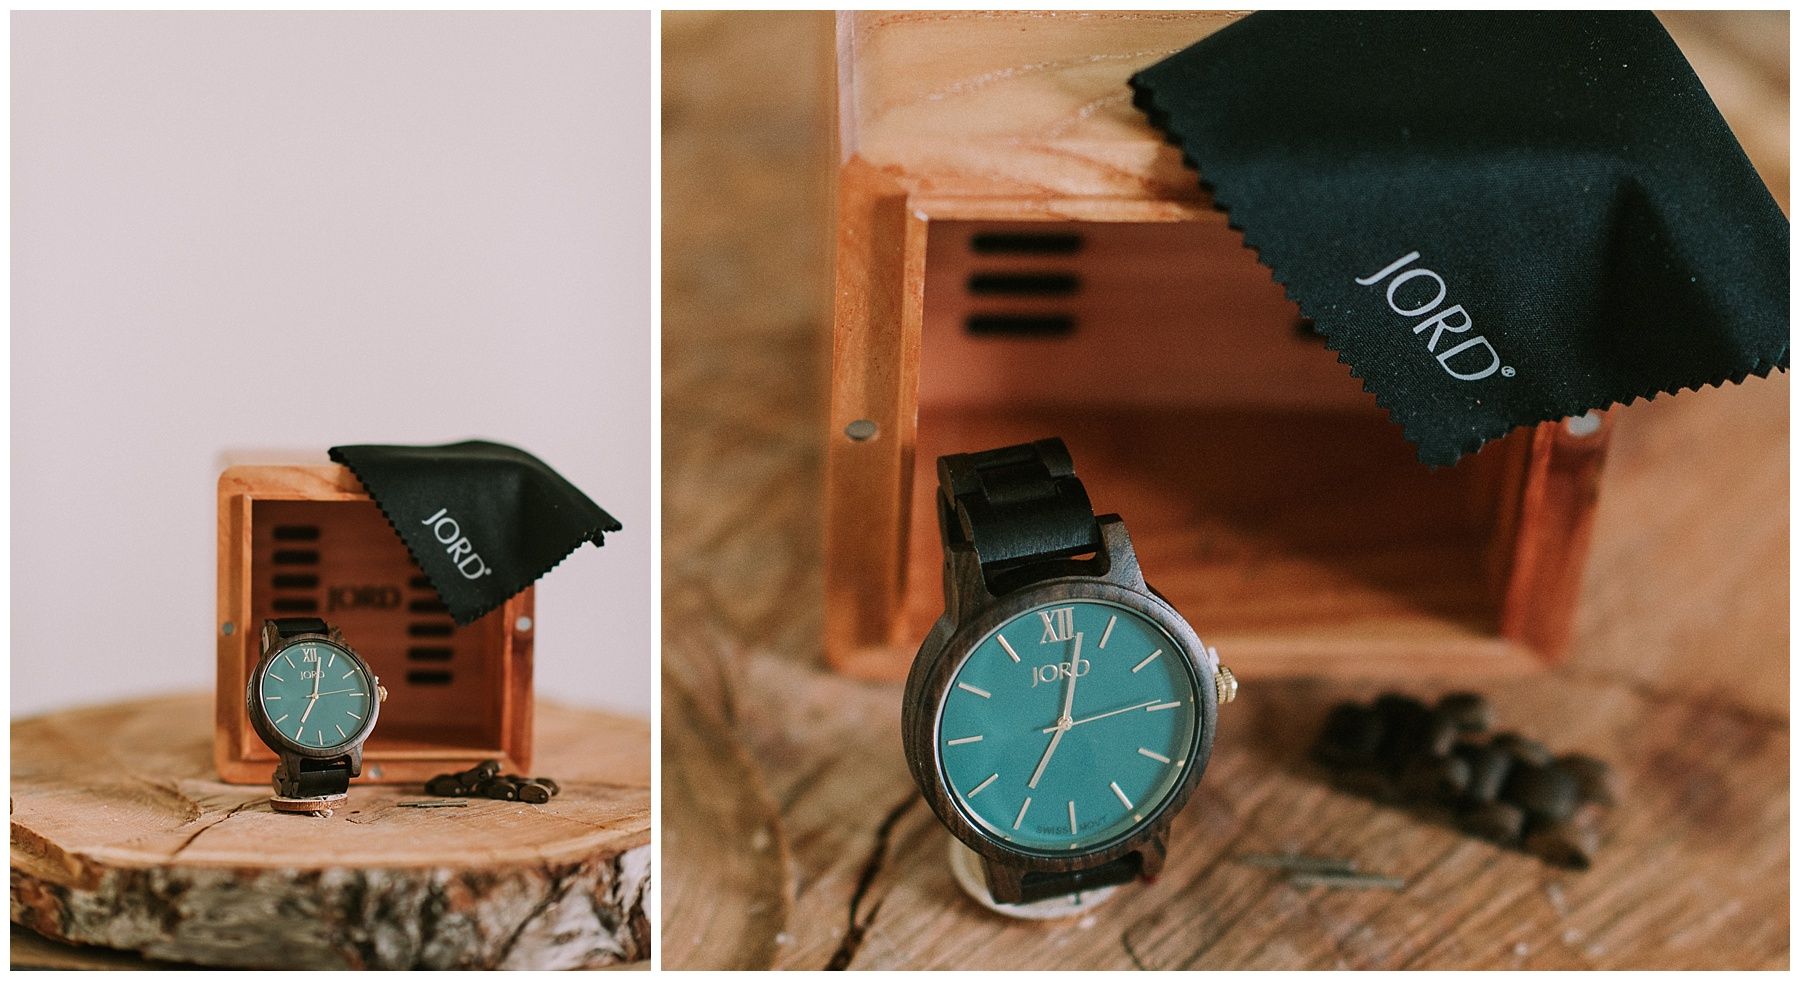 Your watch will come with extra links, screws, a buffing cloth, and a beautiful box to hold all the goodies!